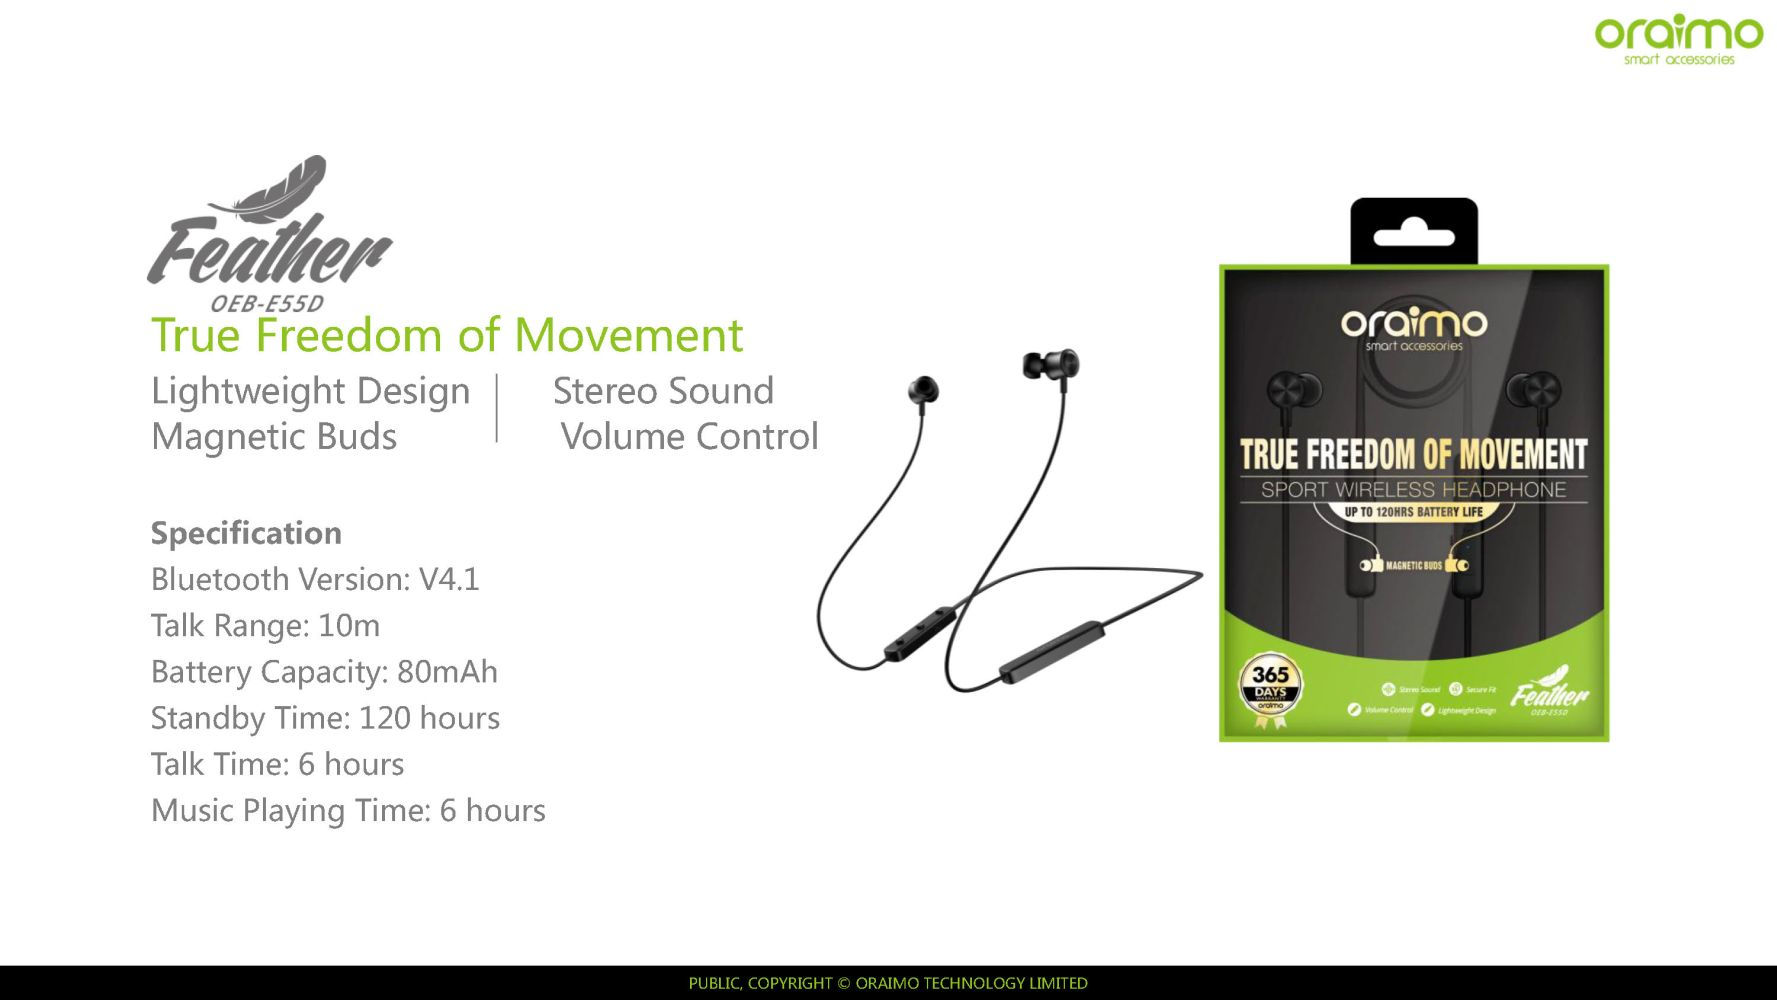 f2e6e60d89d You're viewing: oraimo – Feather – Wireless headset stereo 6 hours music  playing time £ 46.00